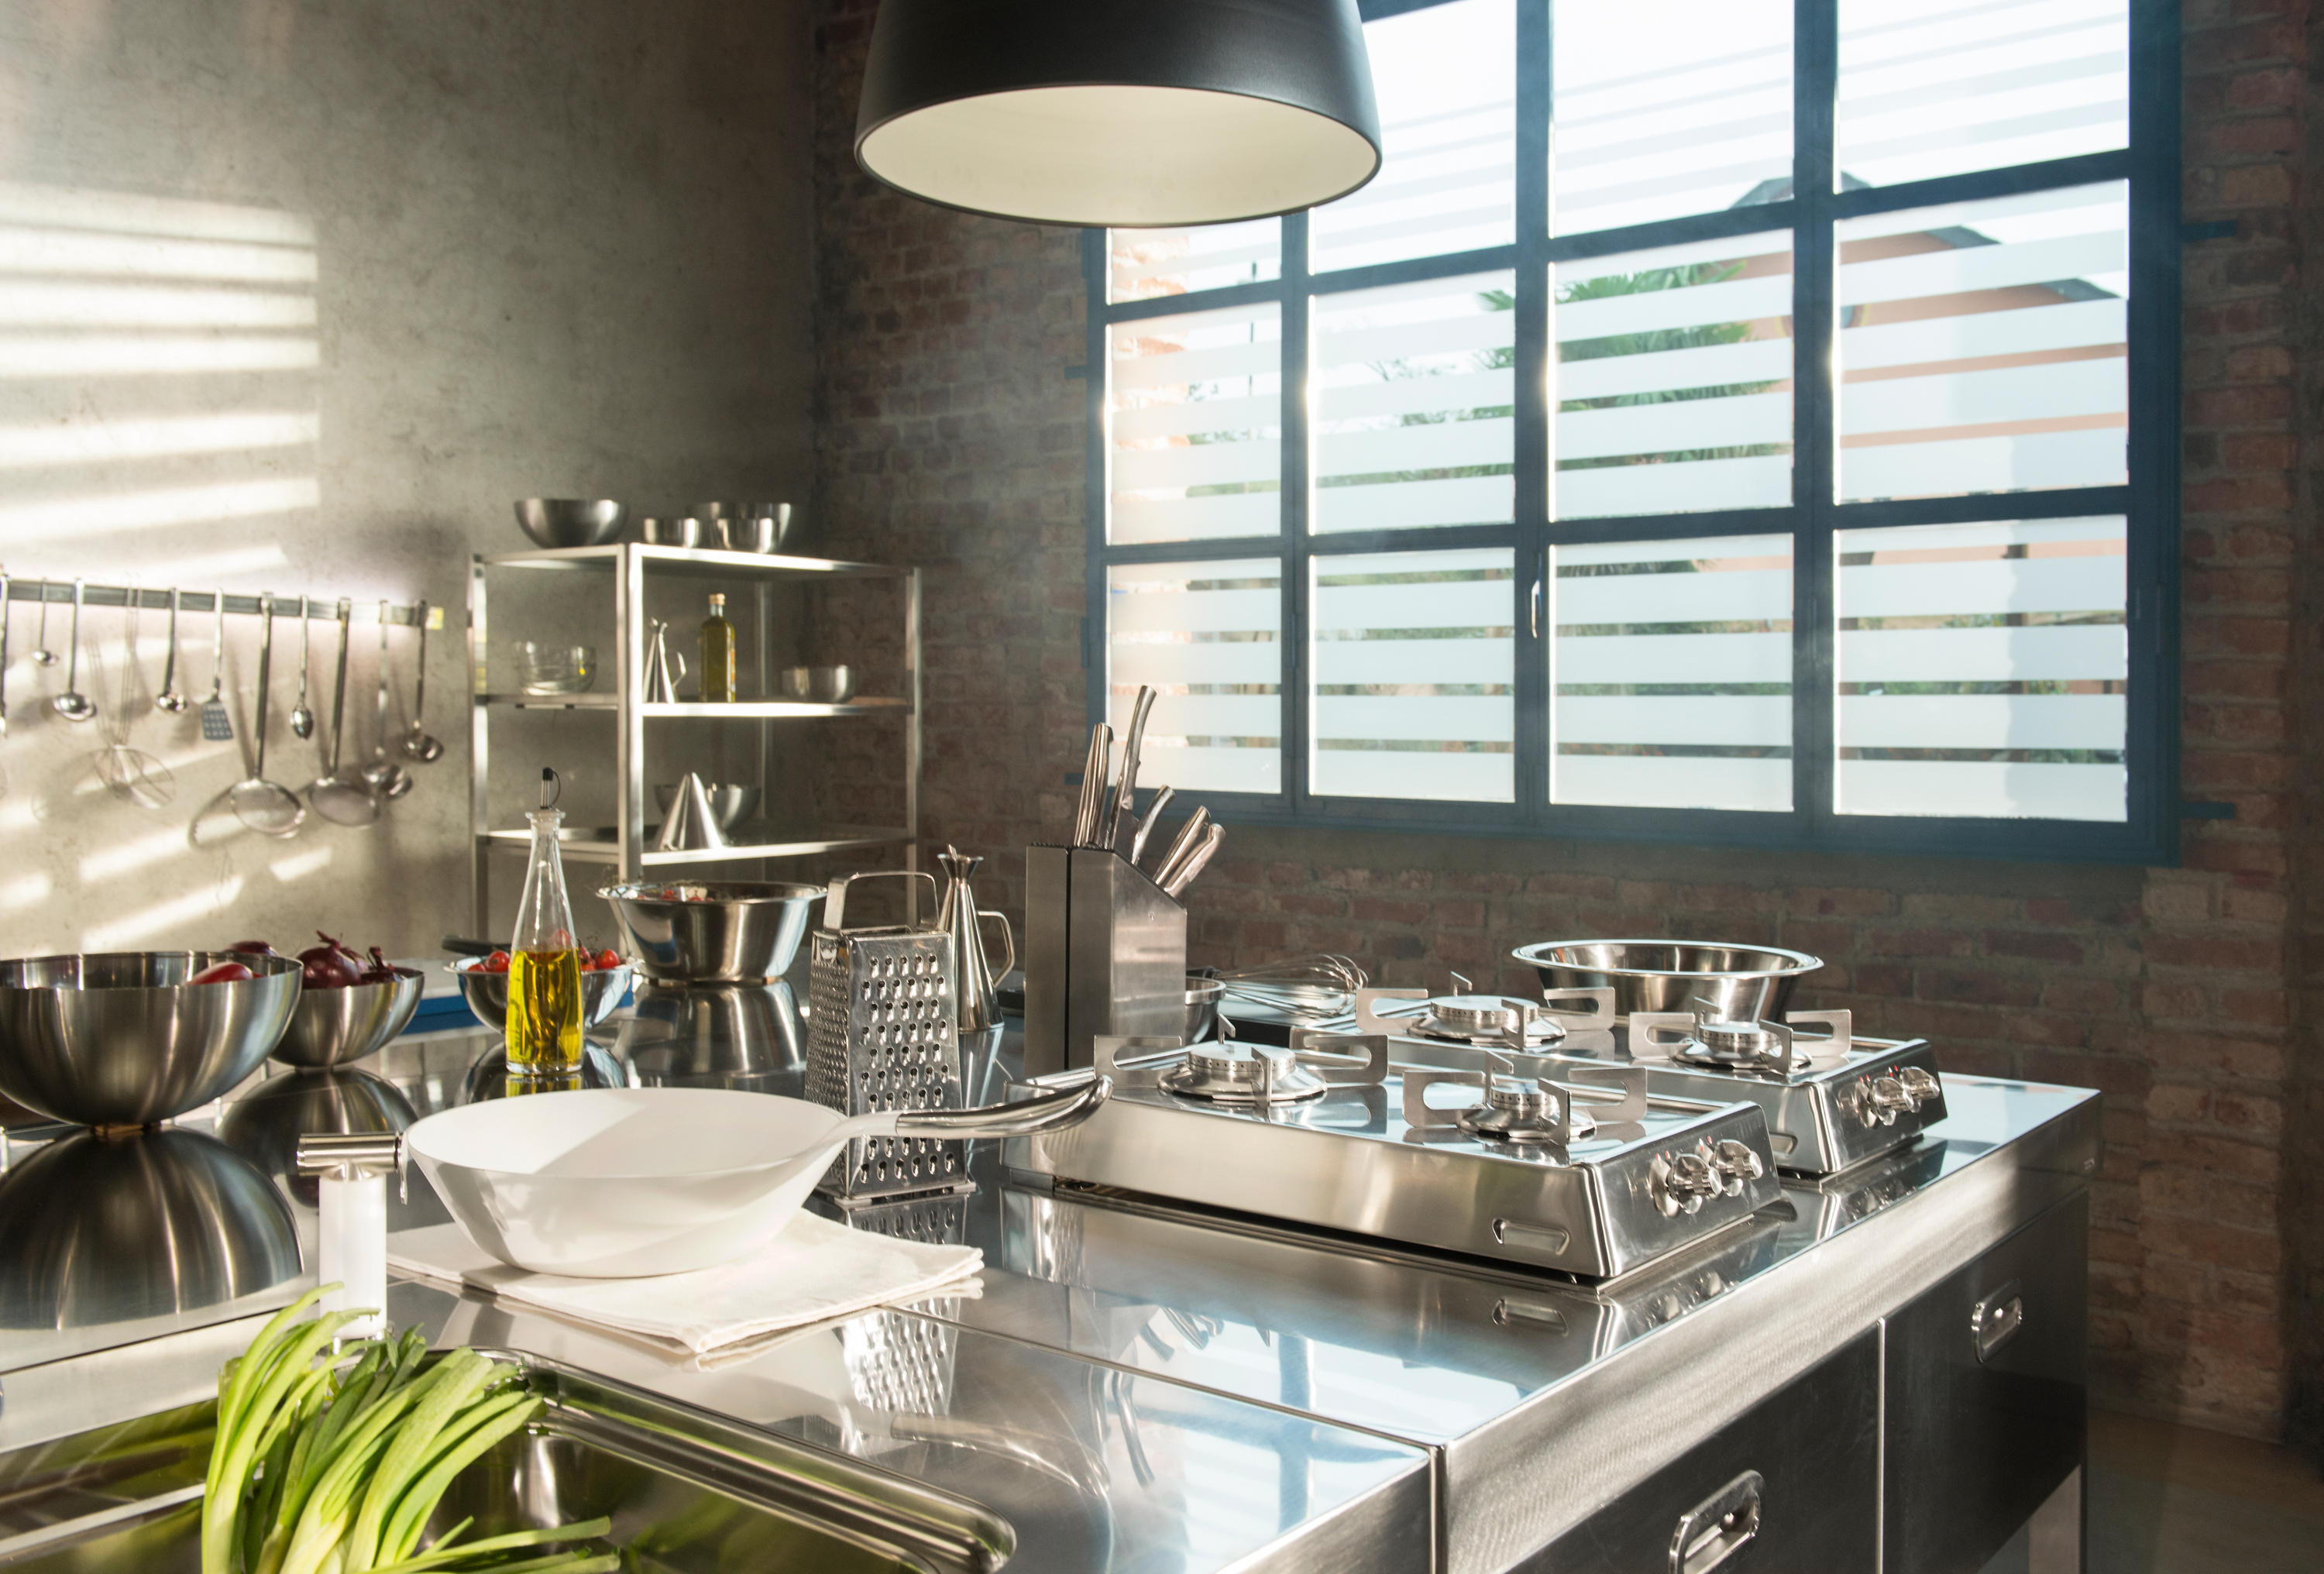 KITCHENS ISLANDS 130 - Compact kitchens from ALPES-INOX   Architonic